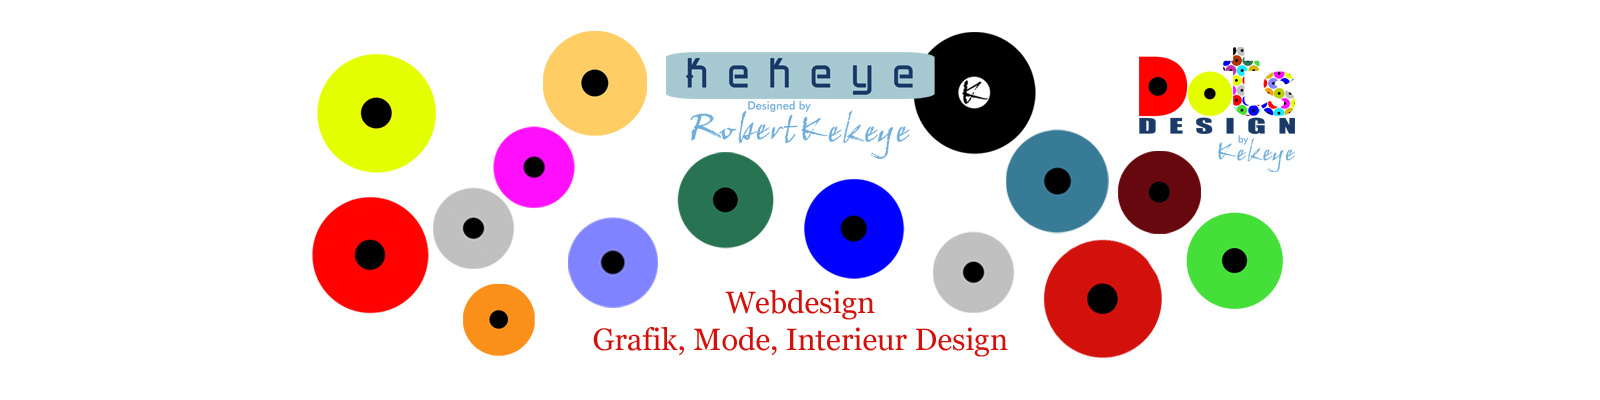 Kekeye Design e.U. Wien, Webdesign, Grafik, Mode, Interieur Design, Kekeye Dots Design